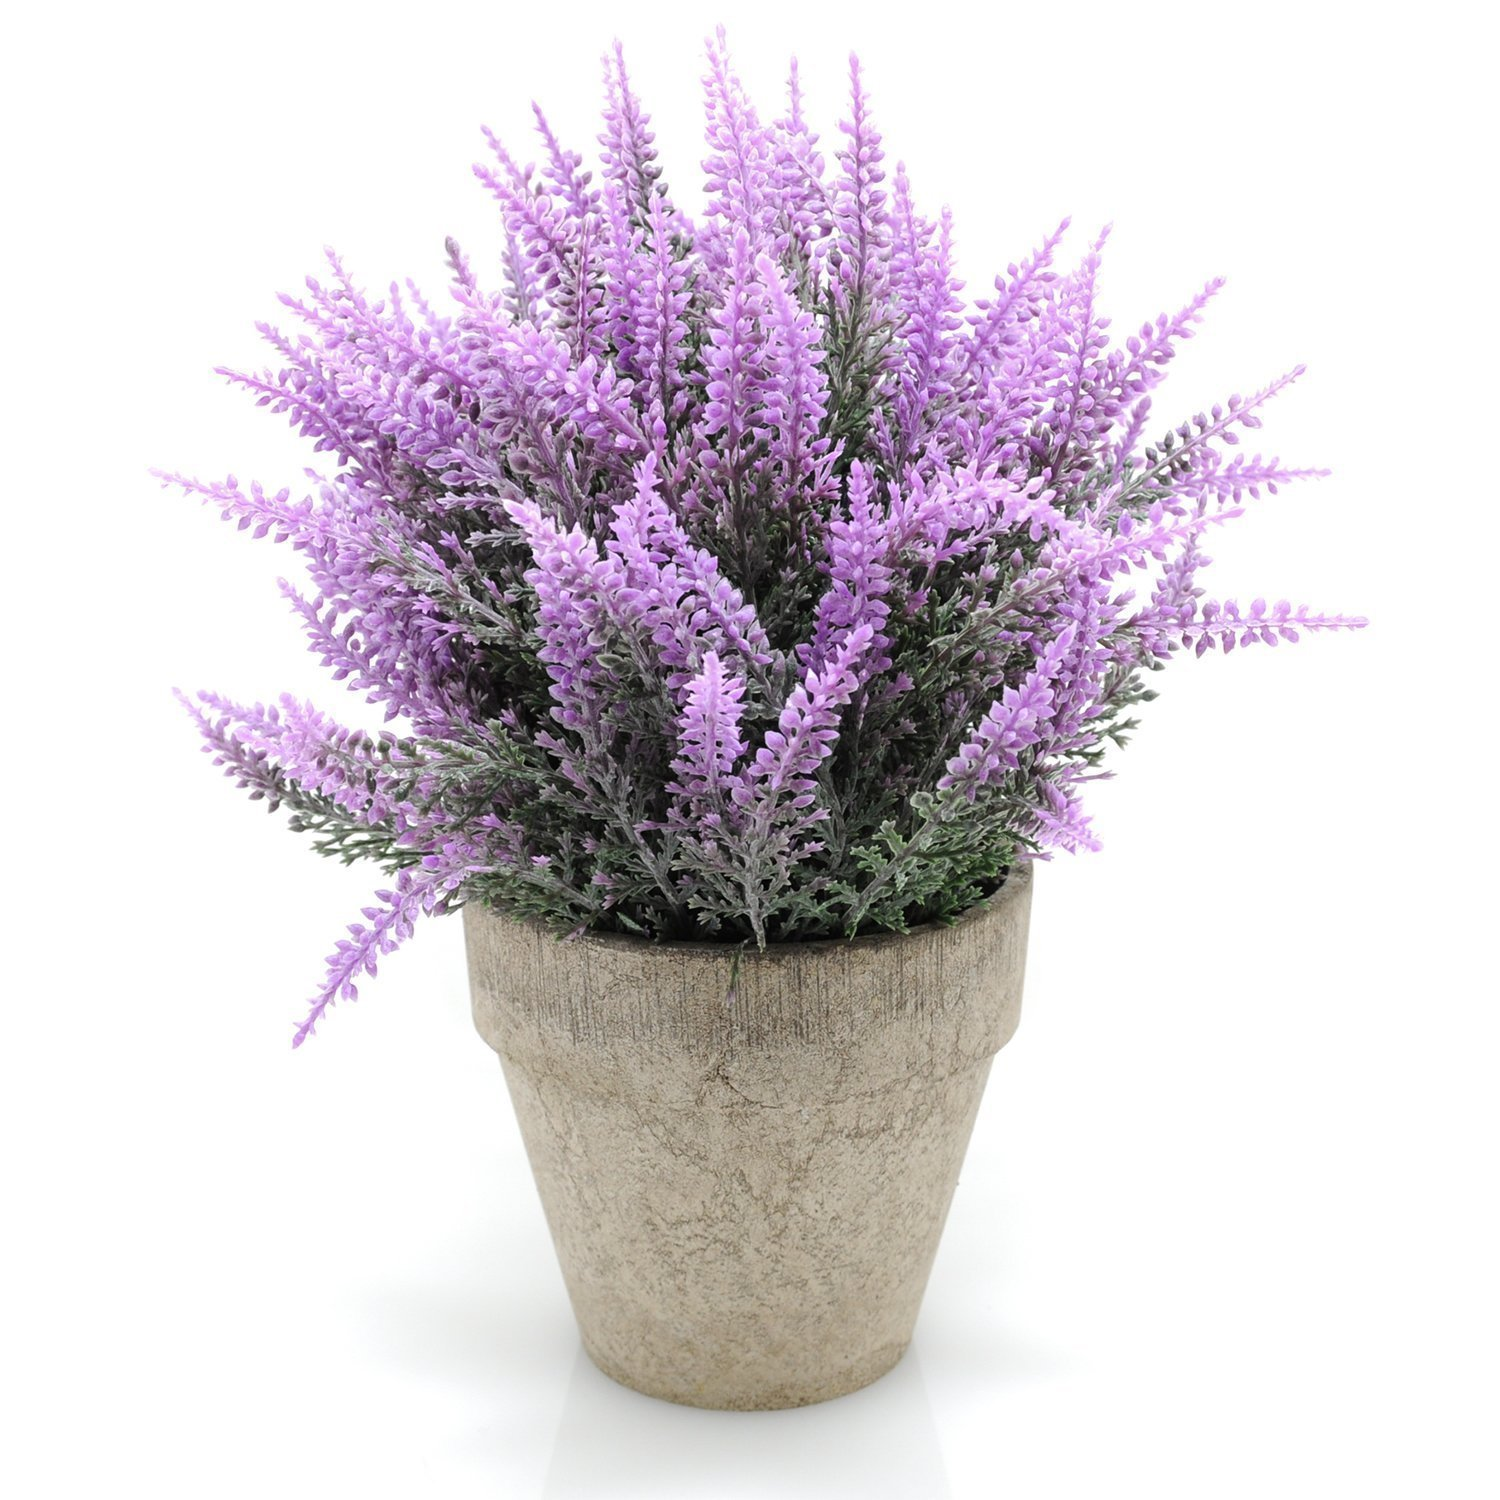 Velener Mini Artificial Flowers Provence Lavender Arrangements in Pots for Home Decor (Purple) – Welcome to Velener shop!